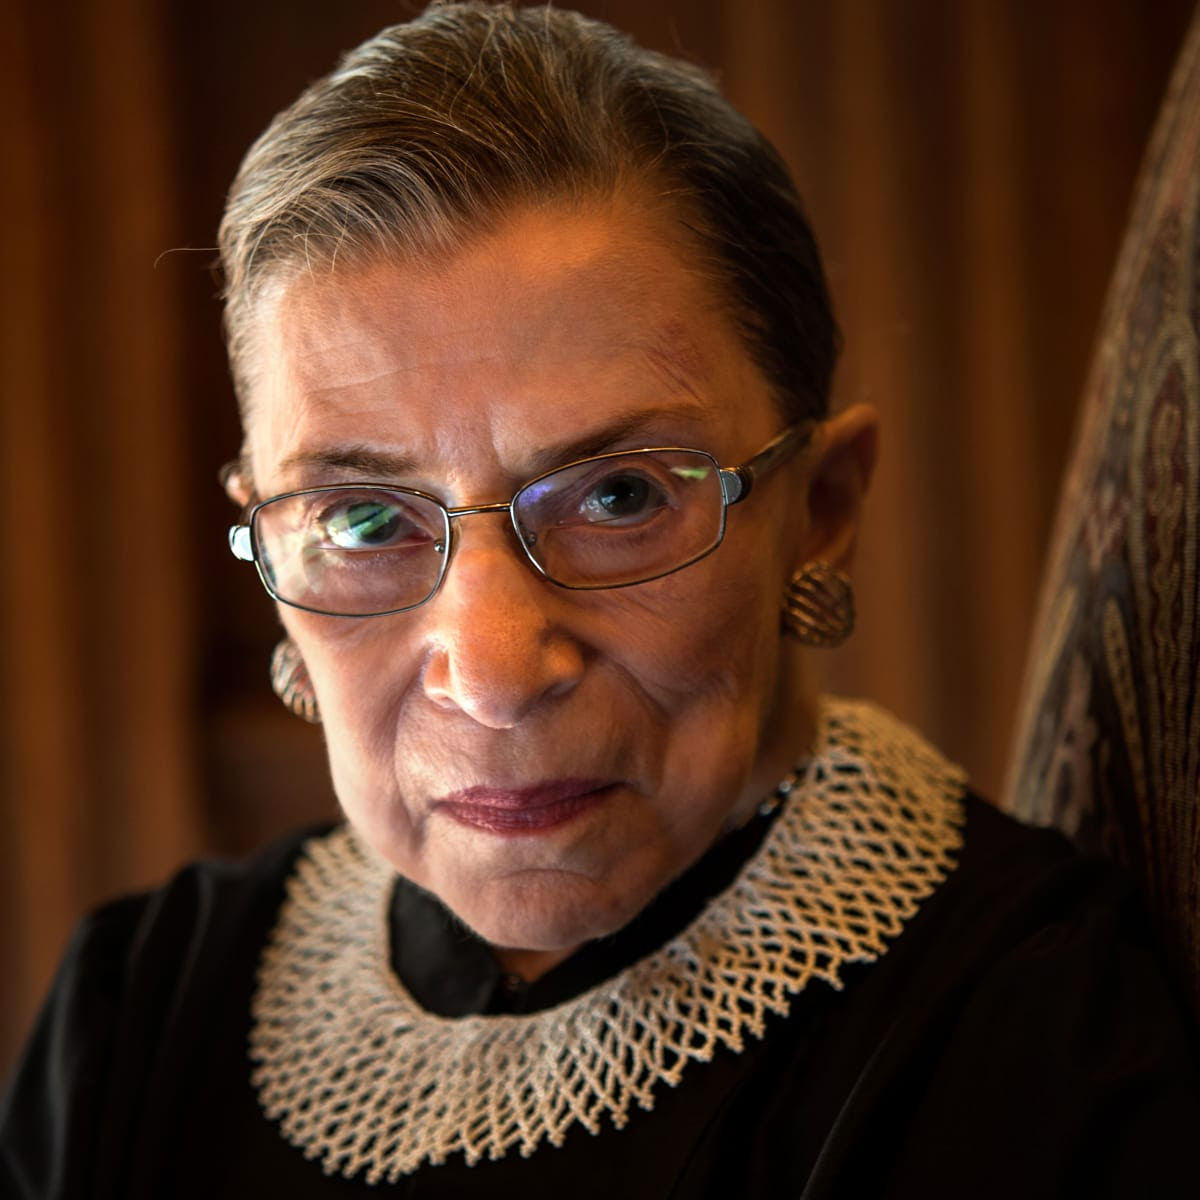 Ruth Bader Ginsburg's Landmark Opinions on Women's Rights - HISTORY